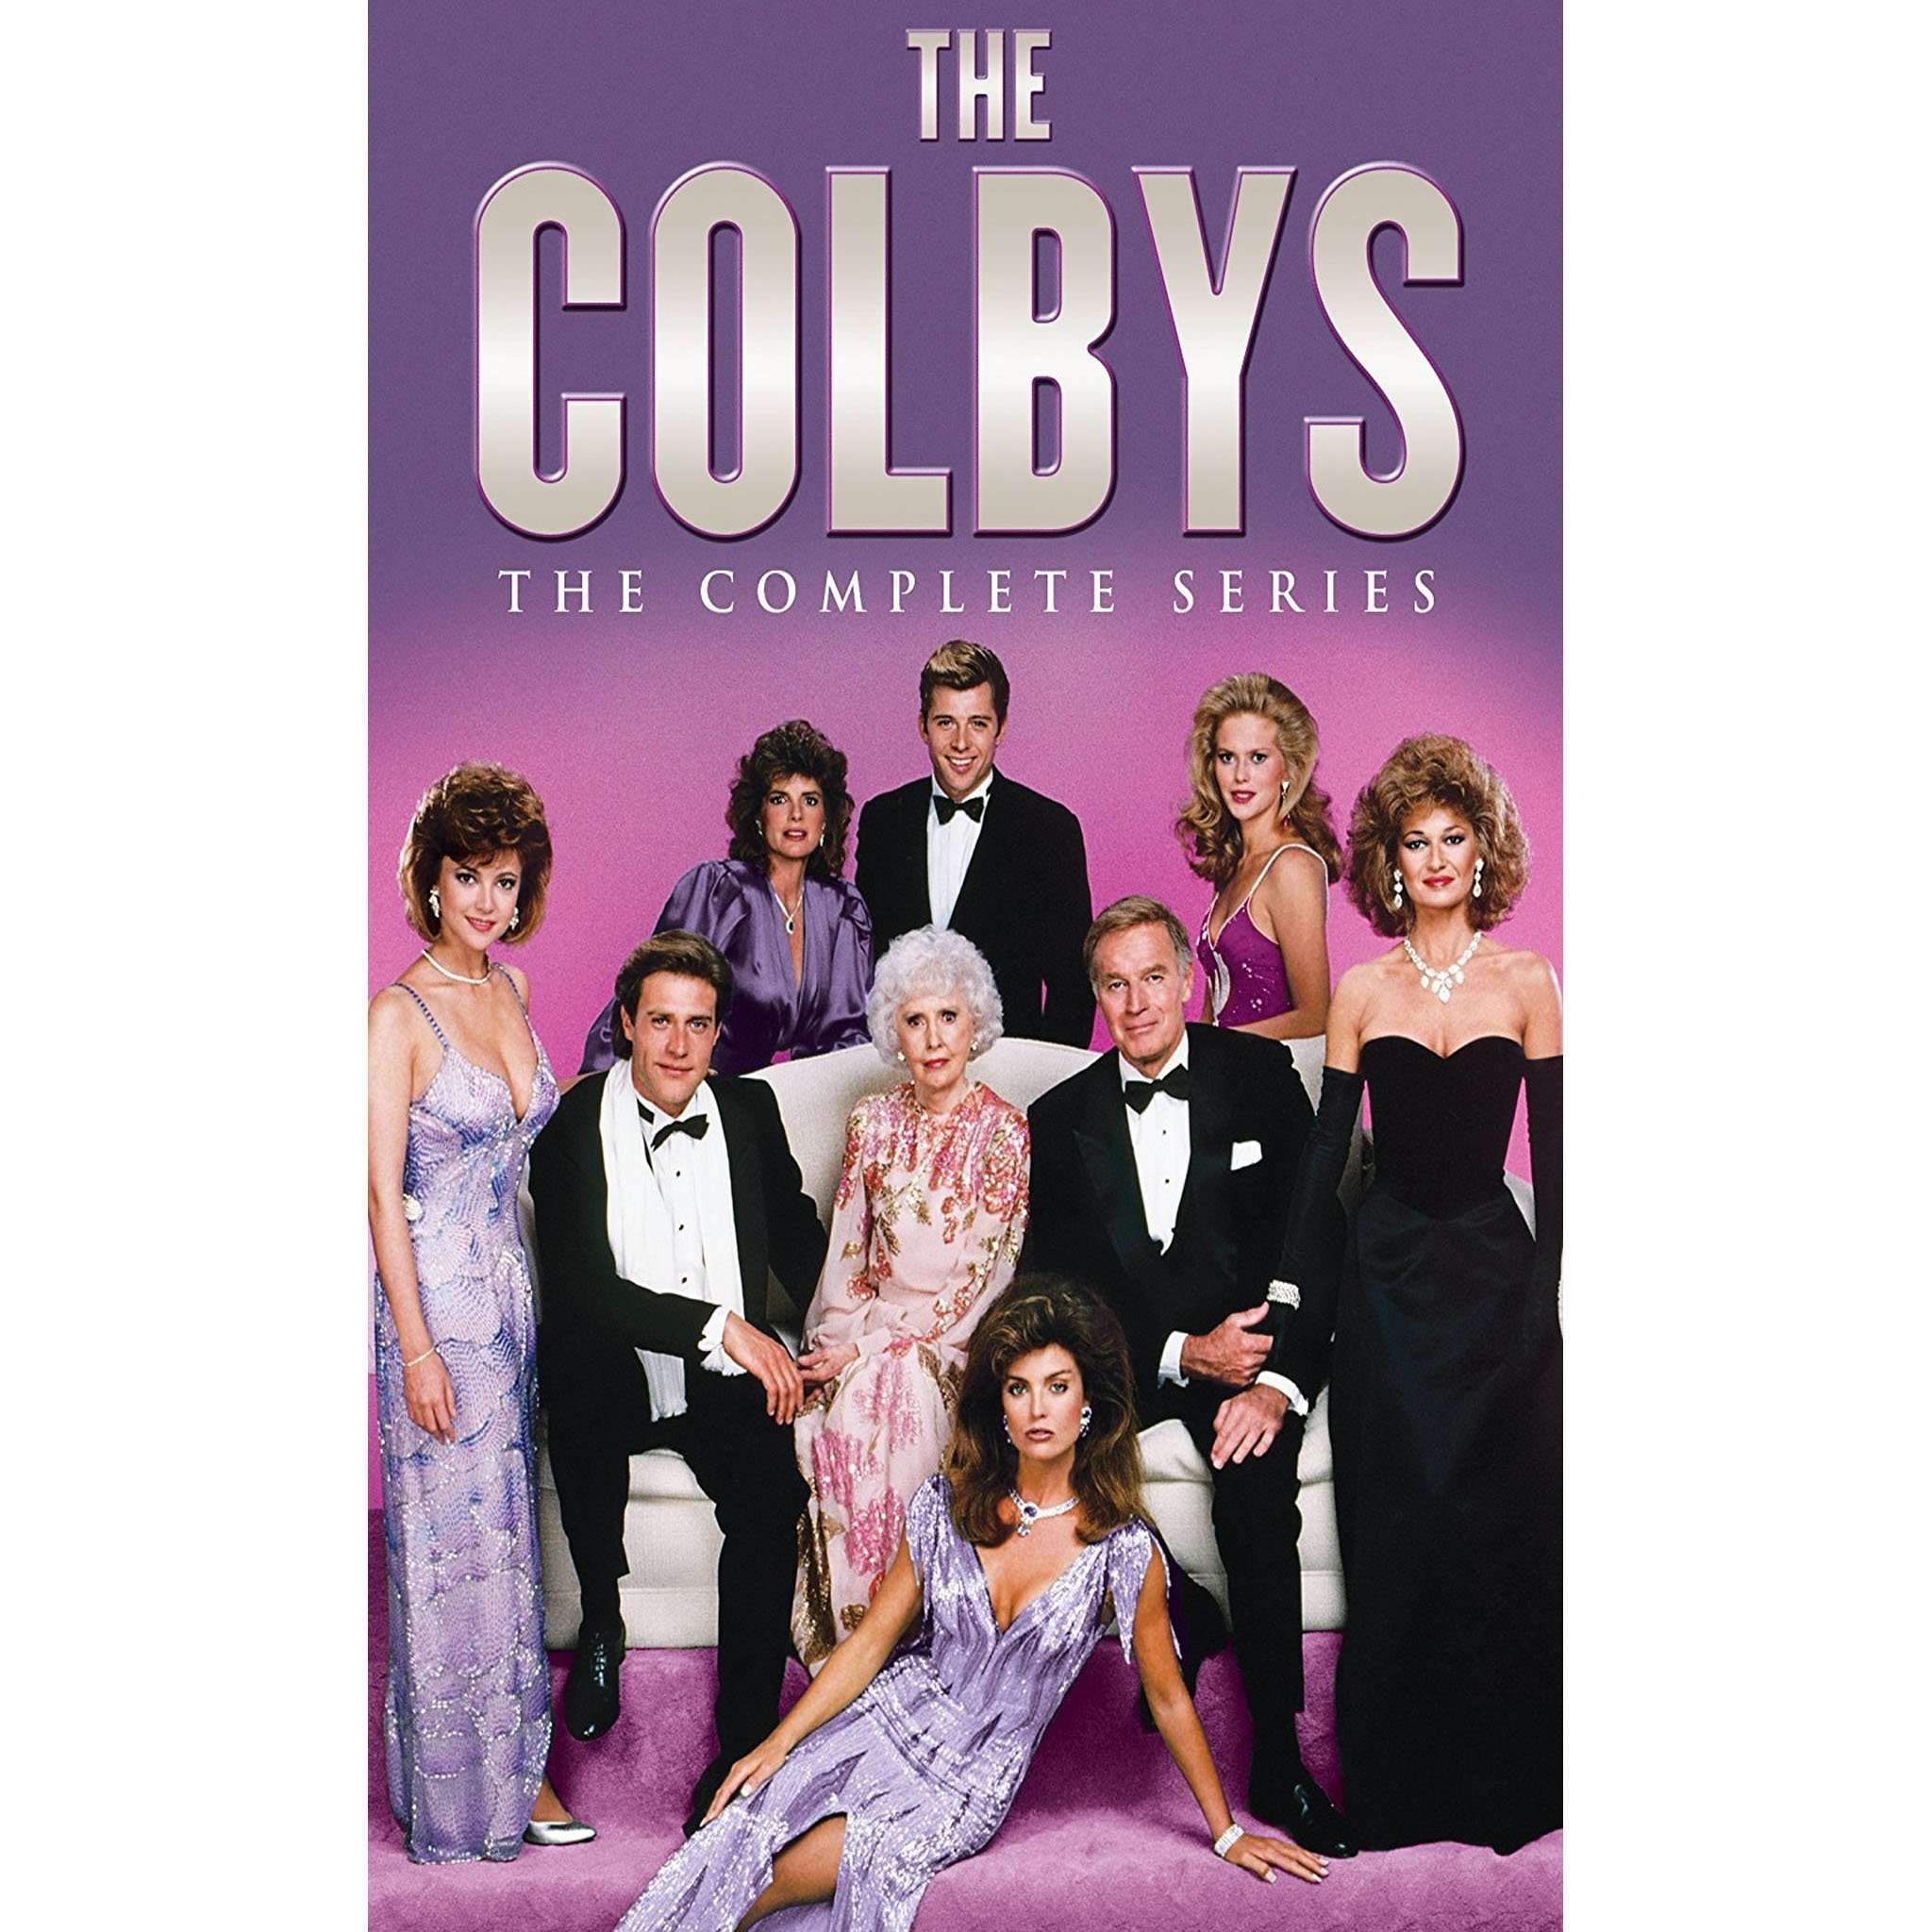 The Colbys DVD Complete Series Box Set Shout! Factory DVDs & Blu-ray Discs > DVDs > Box Sets